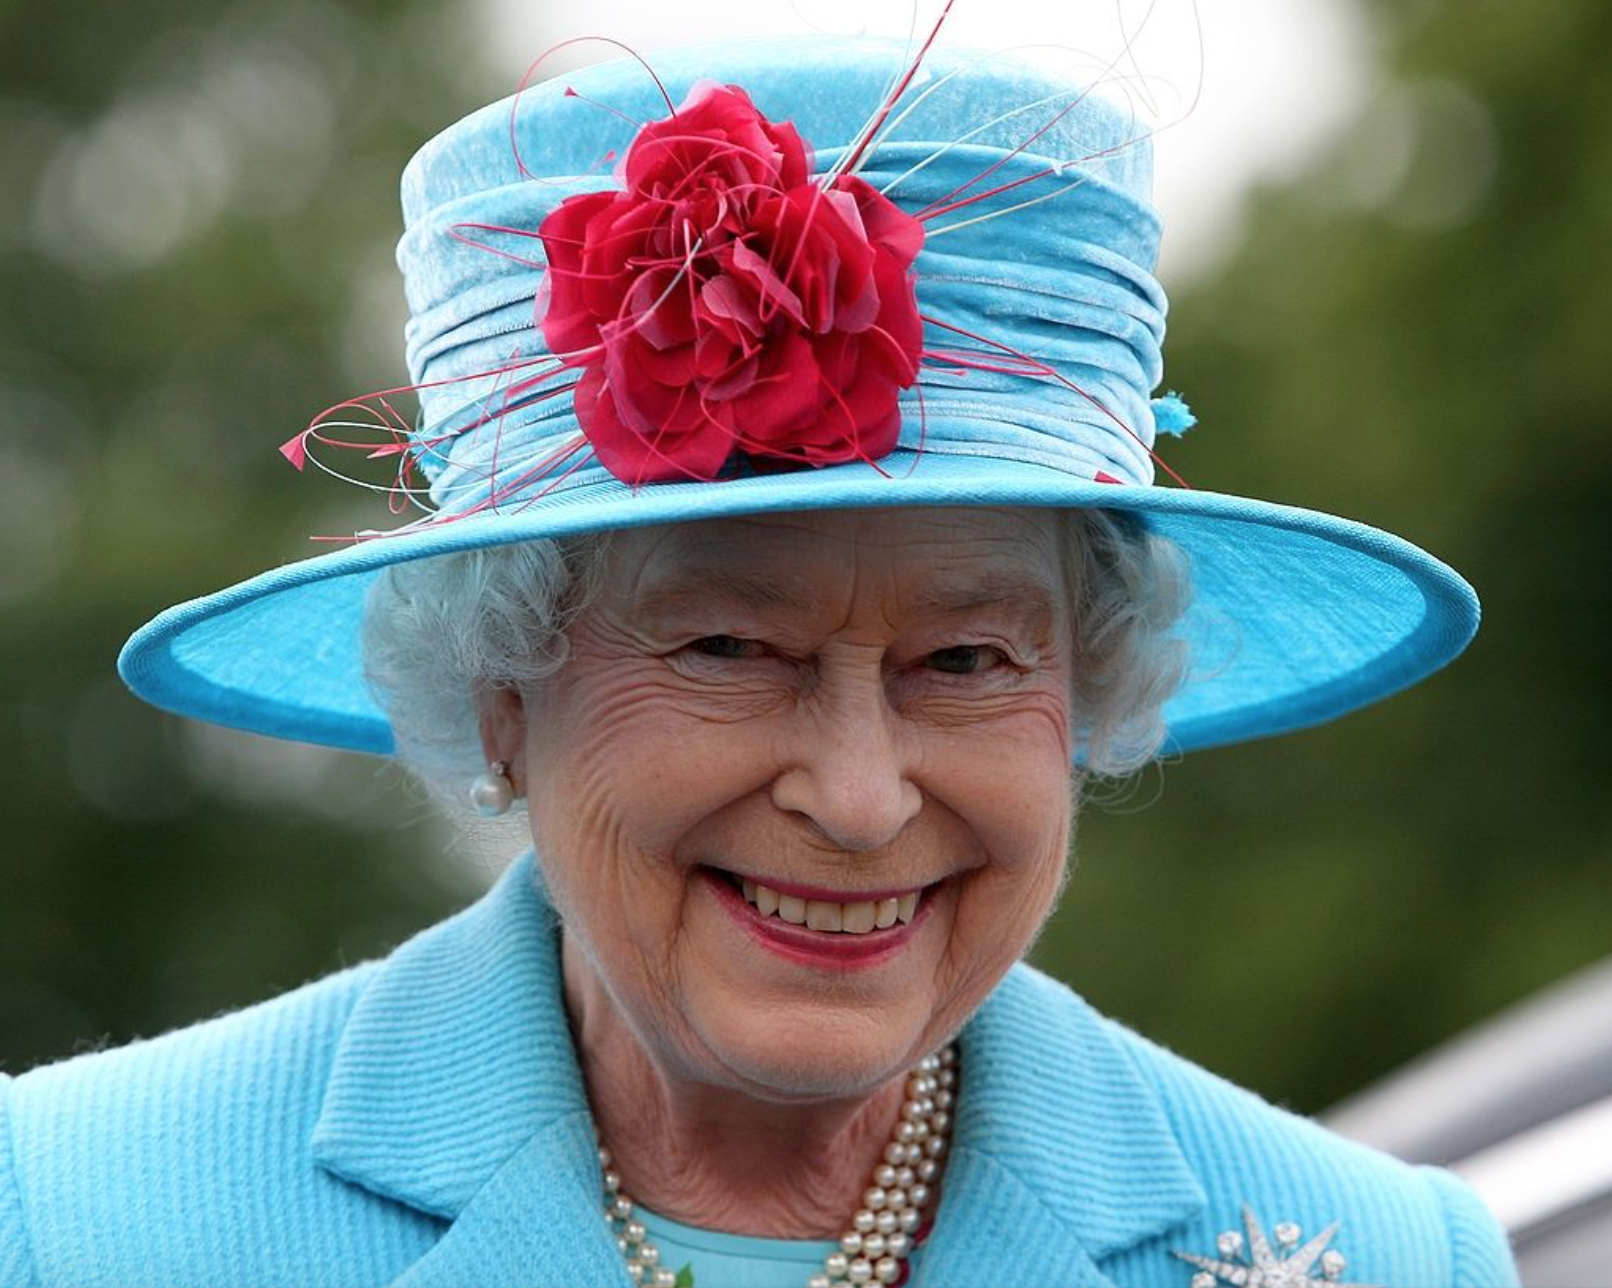 The Queen's Hats